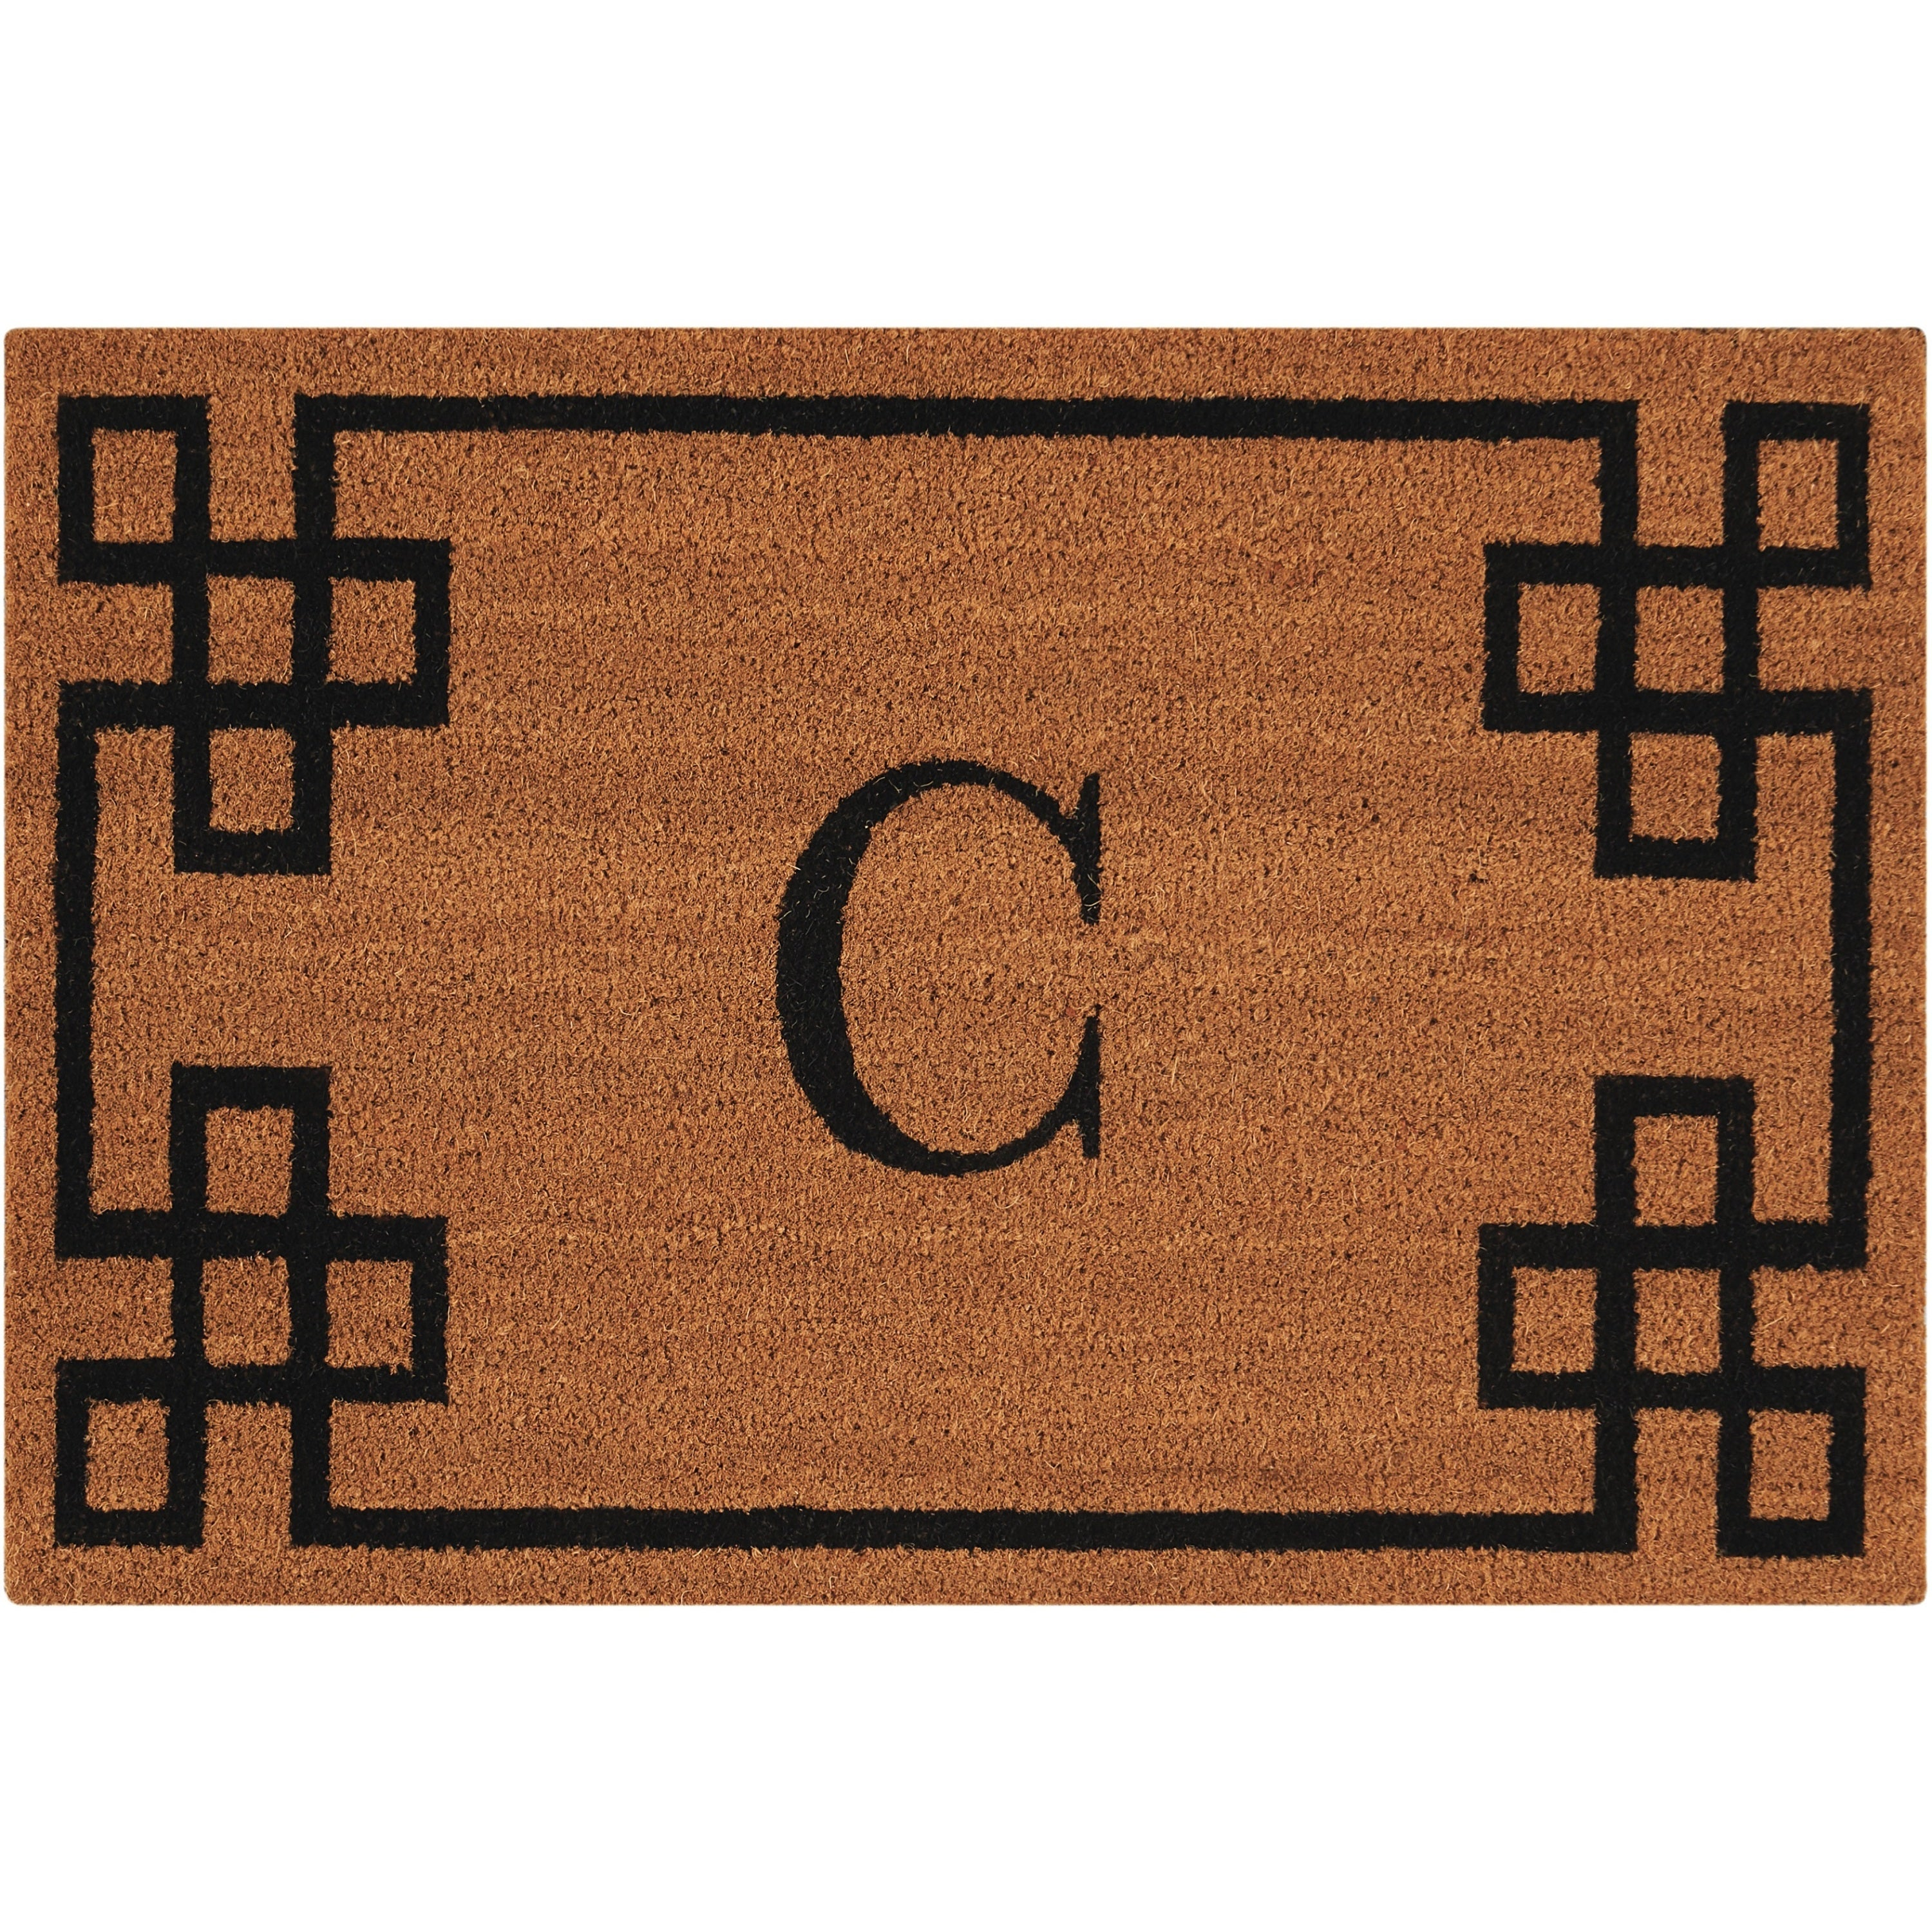 best doormats ideas c concept doormat door view dining design monogrammed initial room astounding mat kids decor